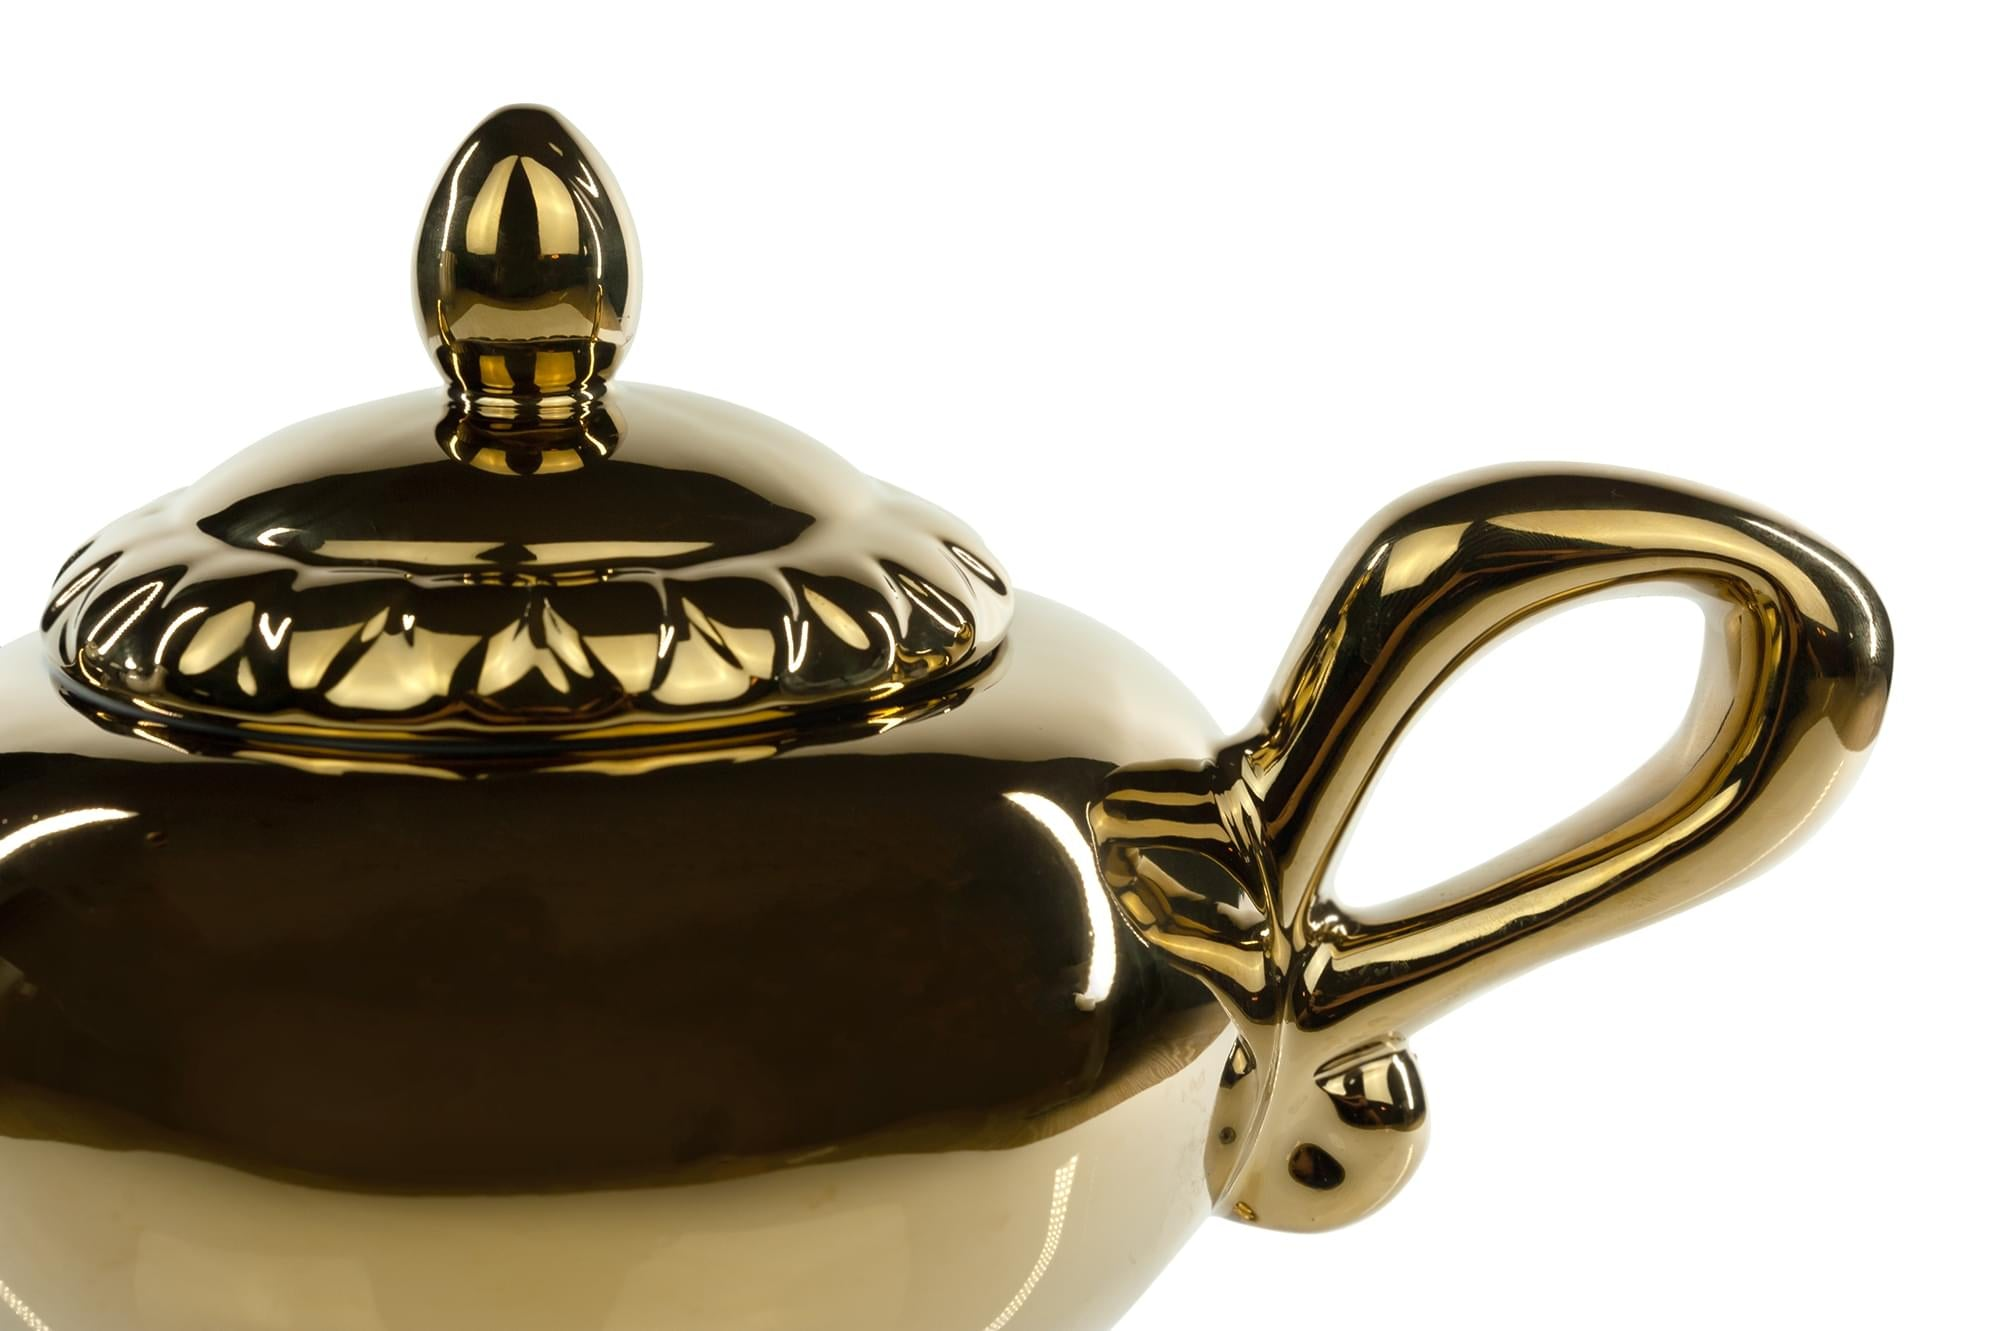 Disney Aladdin Genie Lamp 32oz Ceramic Teapot